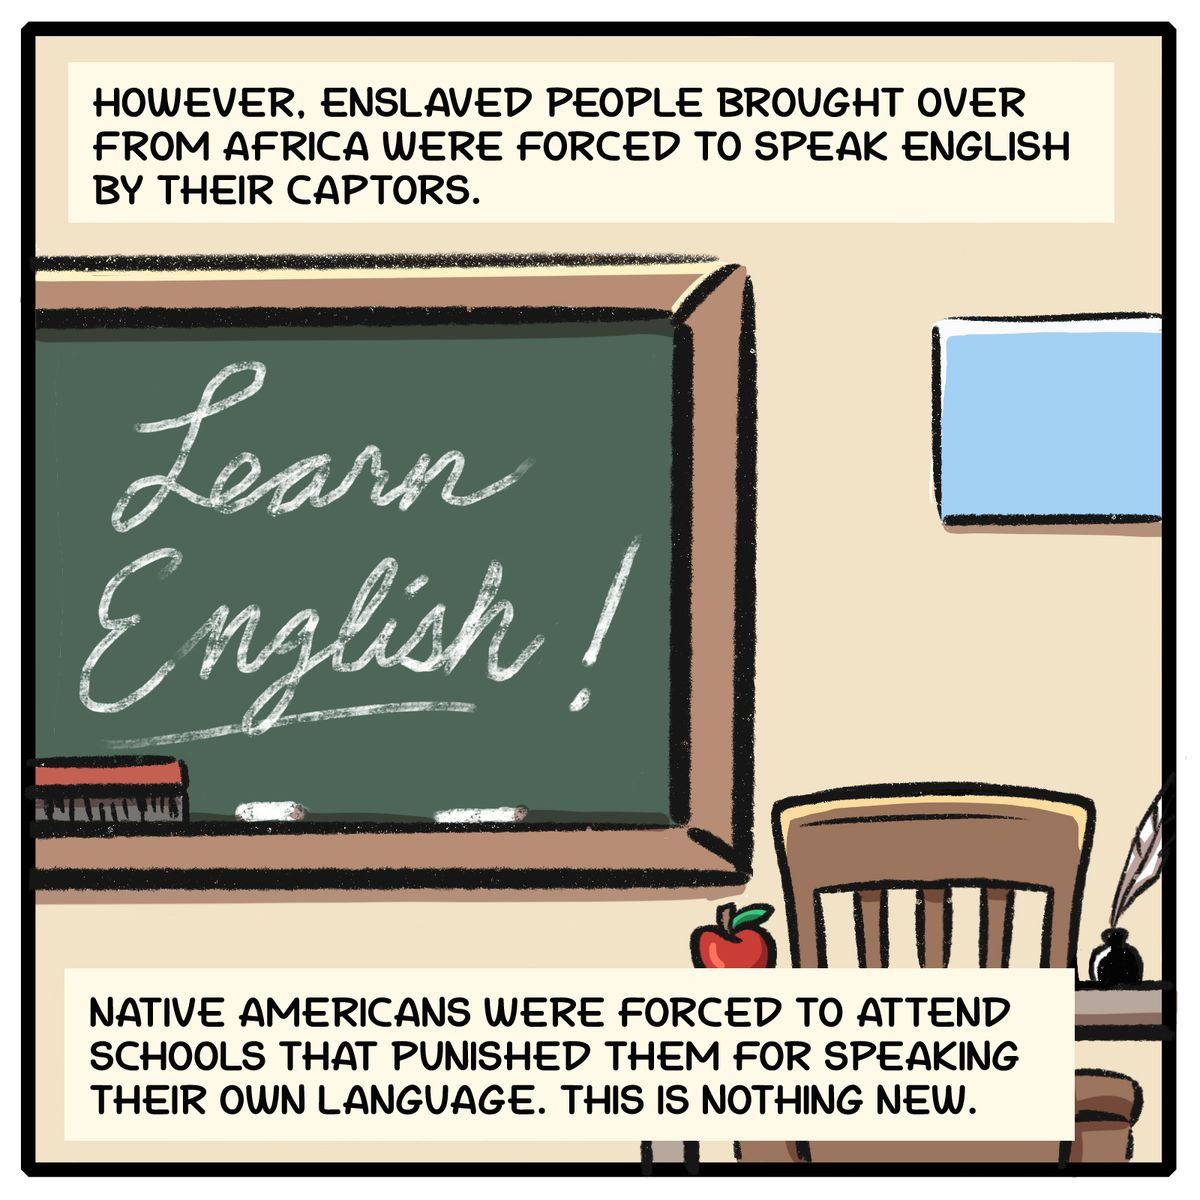 However, enslaved people brought over from Africa were forced to speak English by their captors. Native Americans were forced to attend schools that punished them for speaking their own language. This is nothing new.